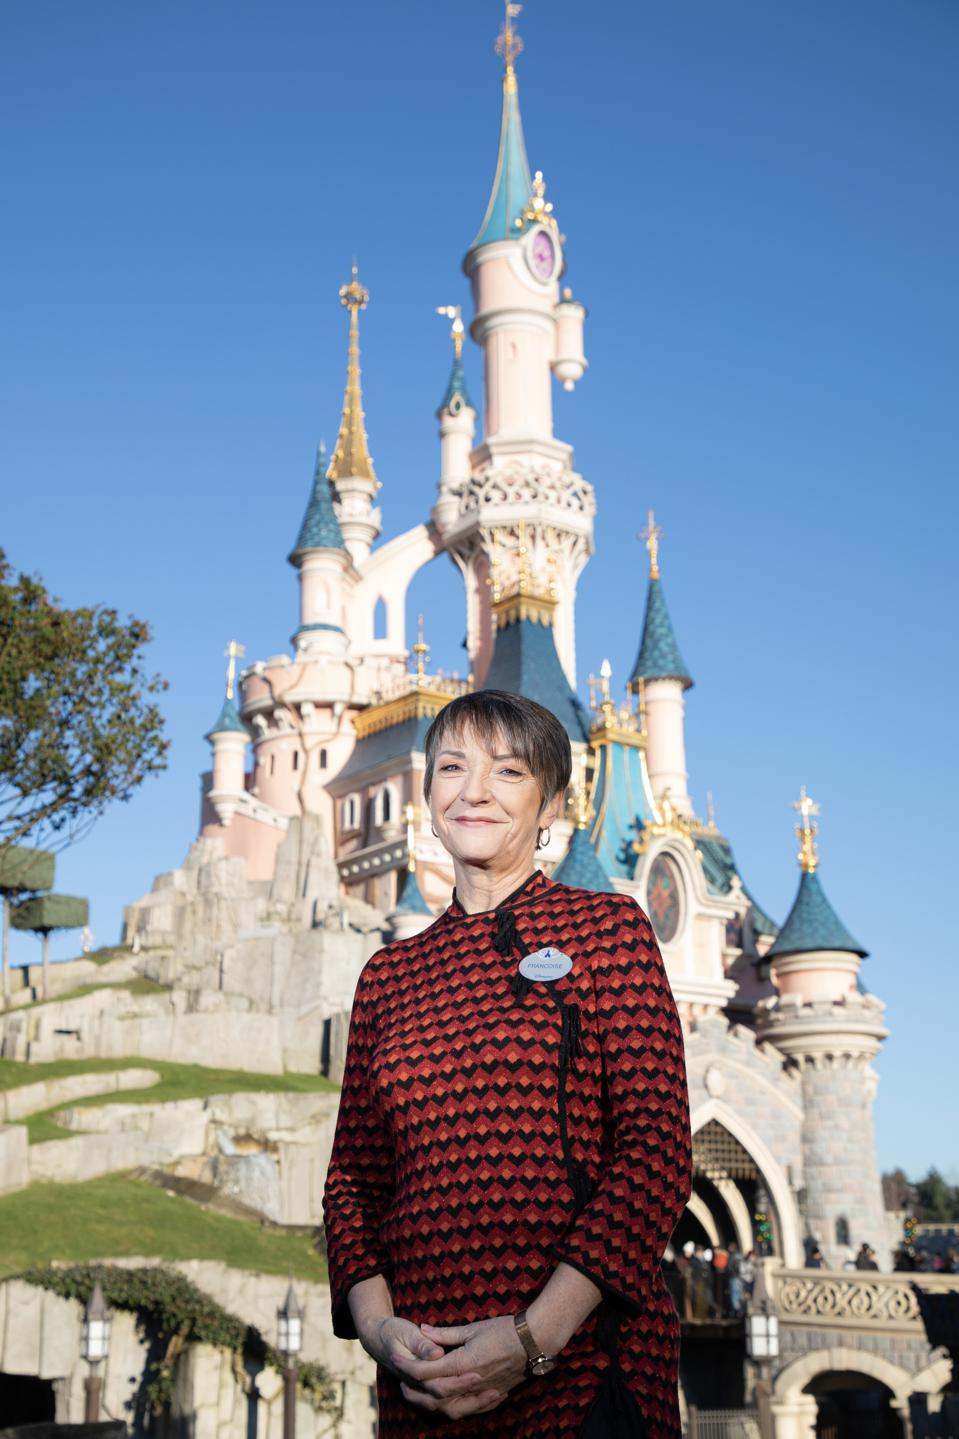 Françoise Barbier has a magic touch on the costumes at Disneyland Paris